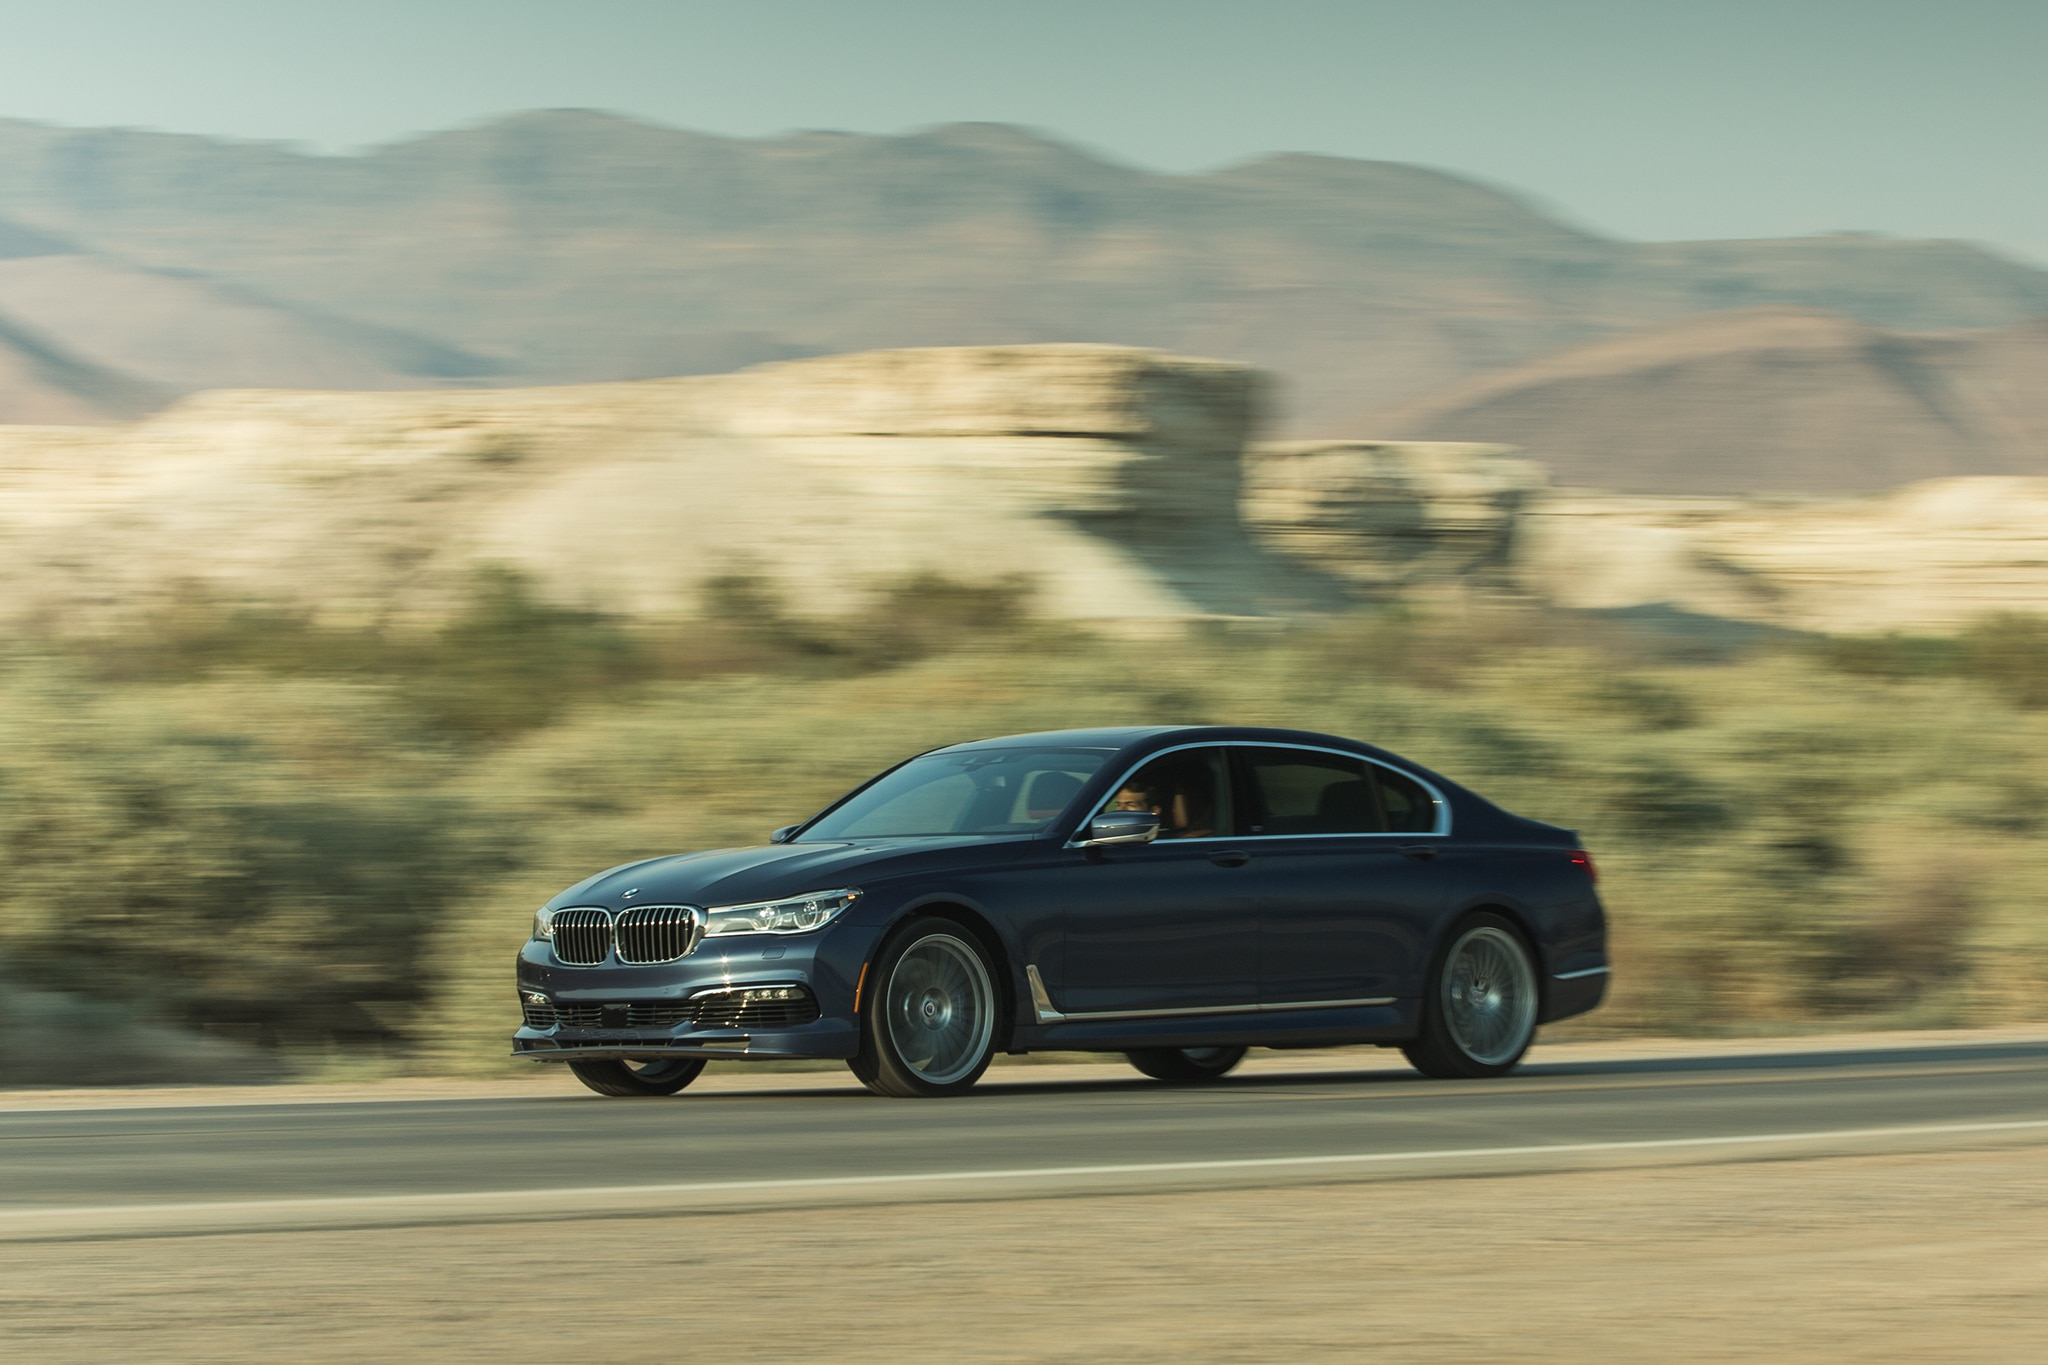 BMW Alpina B XDrive One Week Review Automobile Magazine - Bmw alpina 7 series